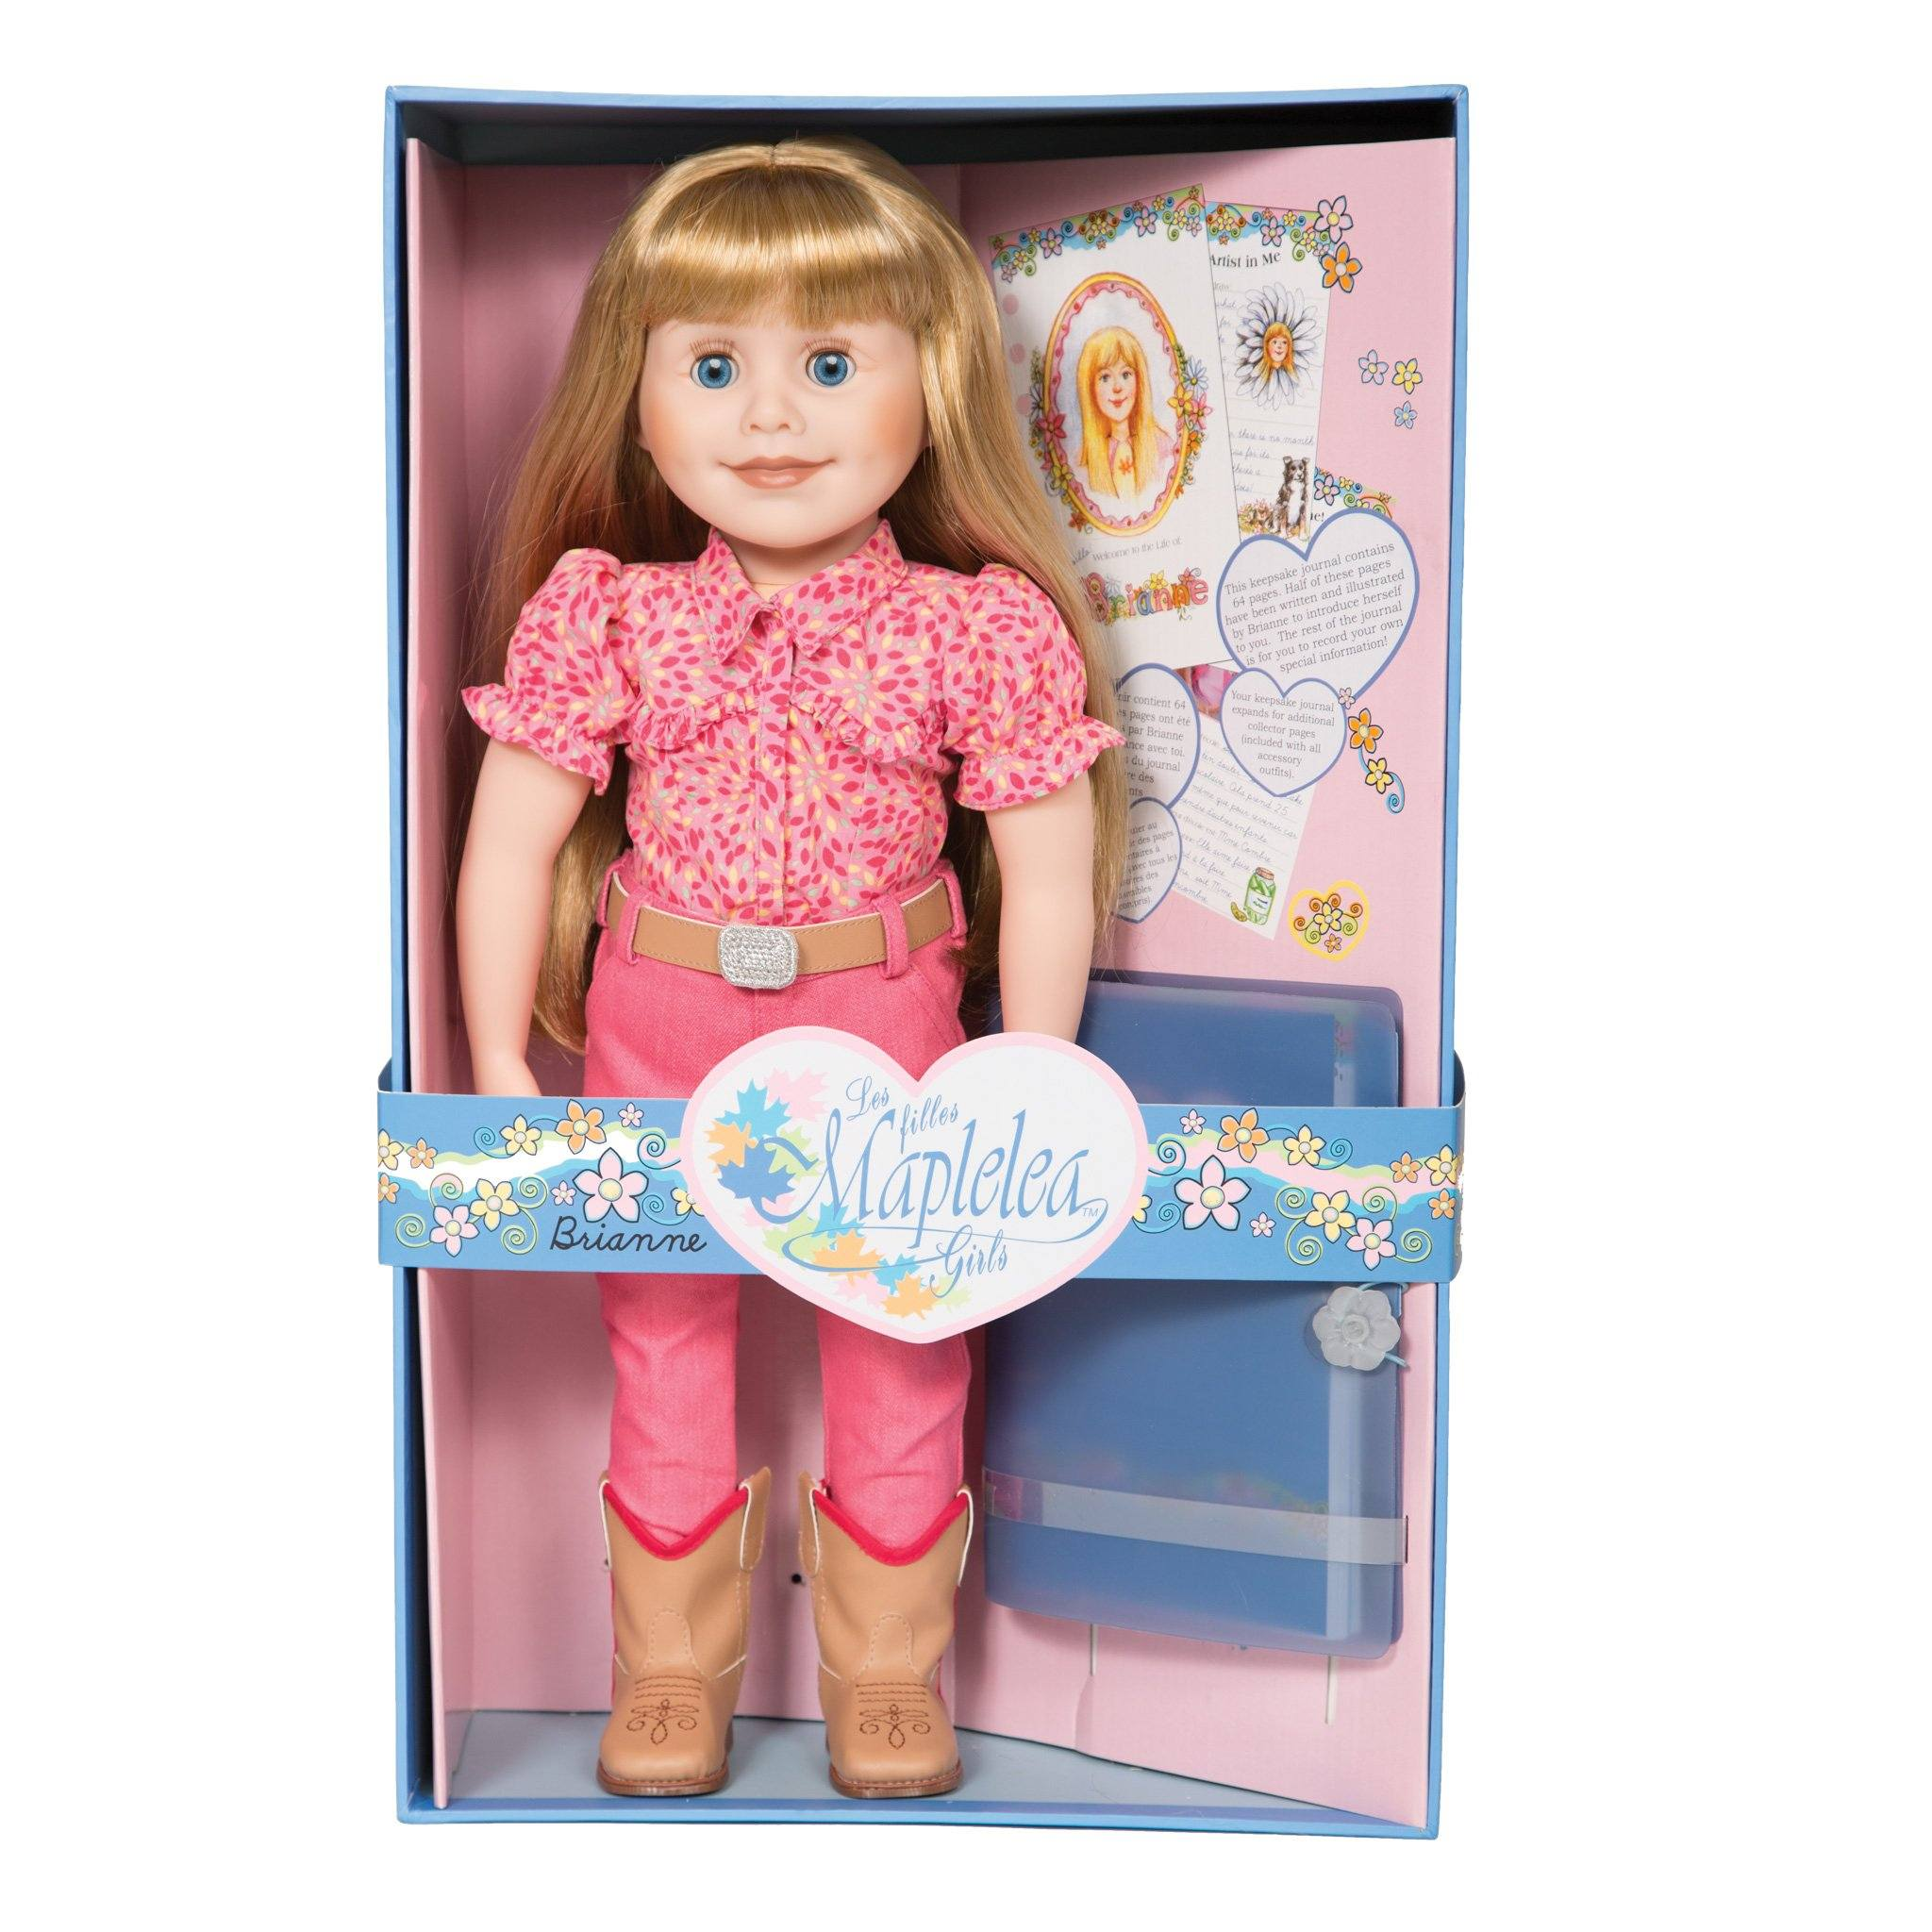 Maplelea 18 inch doll Brianne with story journal wearing pink patterned button-up shirt, pink pants, beige belt with sparkly buckle and beige riding boots.  Shown in box.